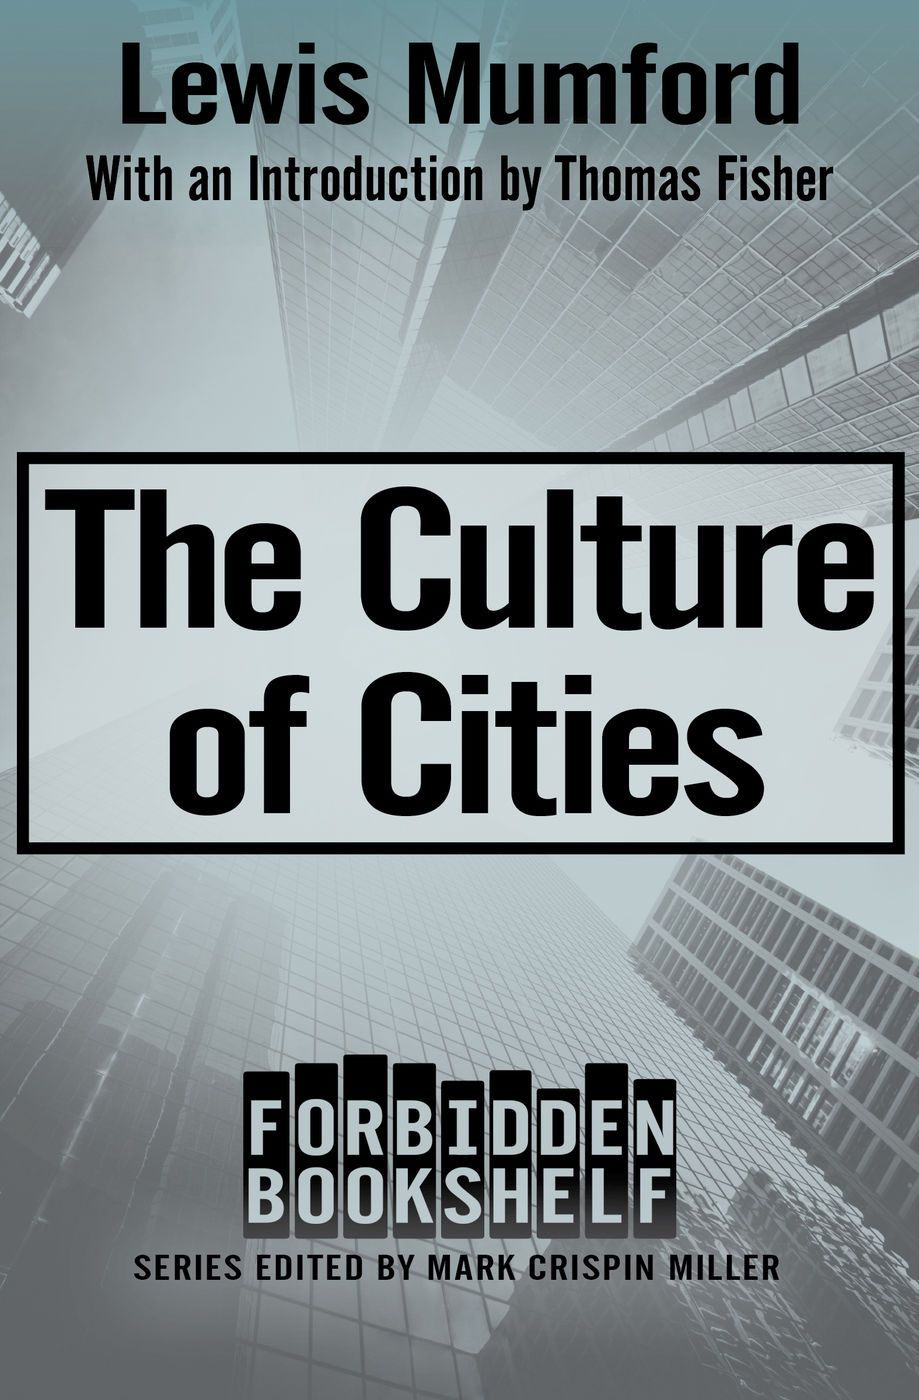 The Culture of Cities By Mark Crispin Miller & Lewis Mumford